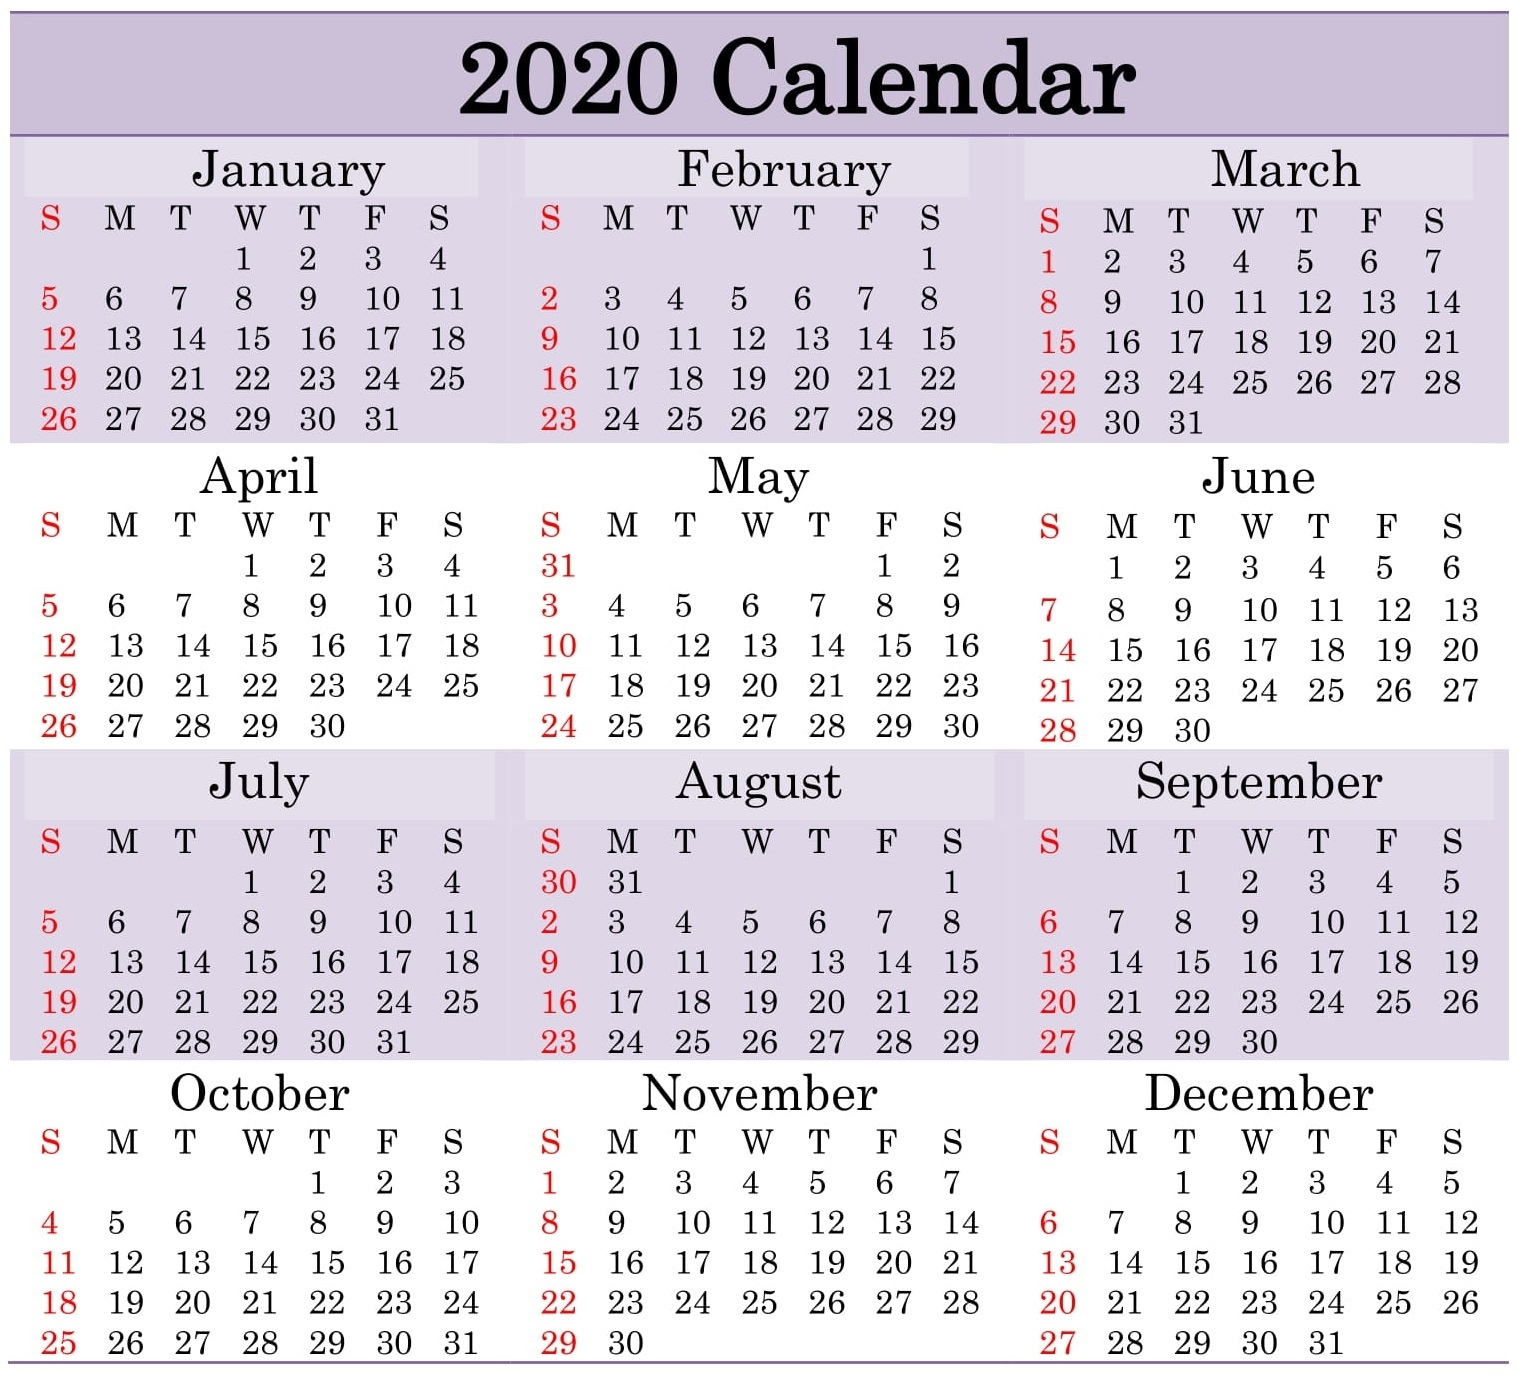 Printable 2020 Calendar Word Document - Latest Printable Printable Calendar With Numbered Days 2020